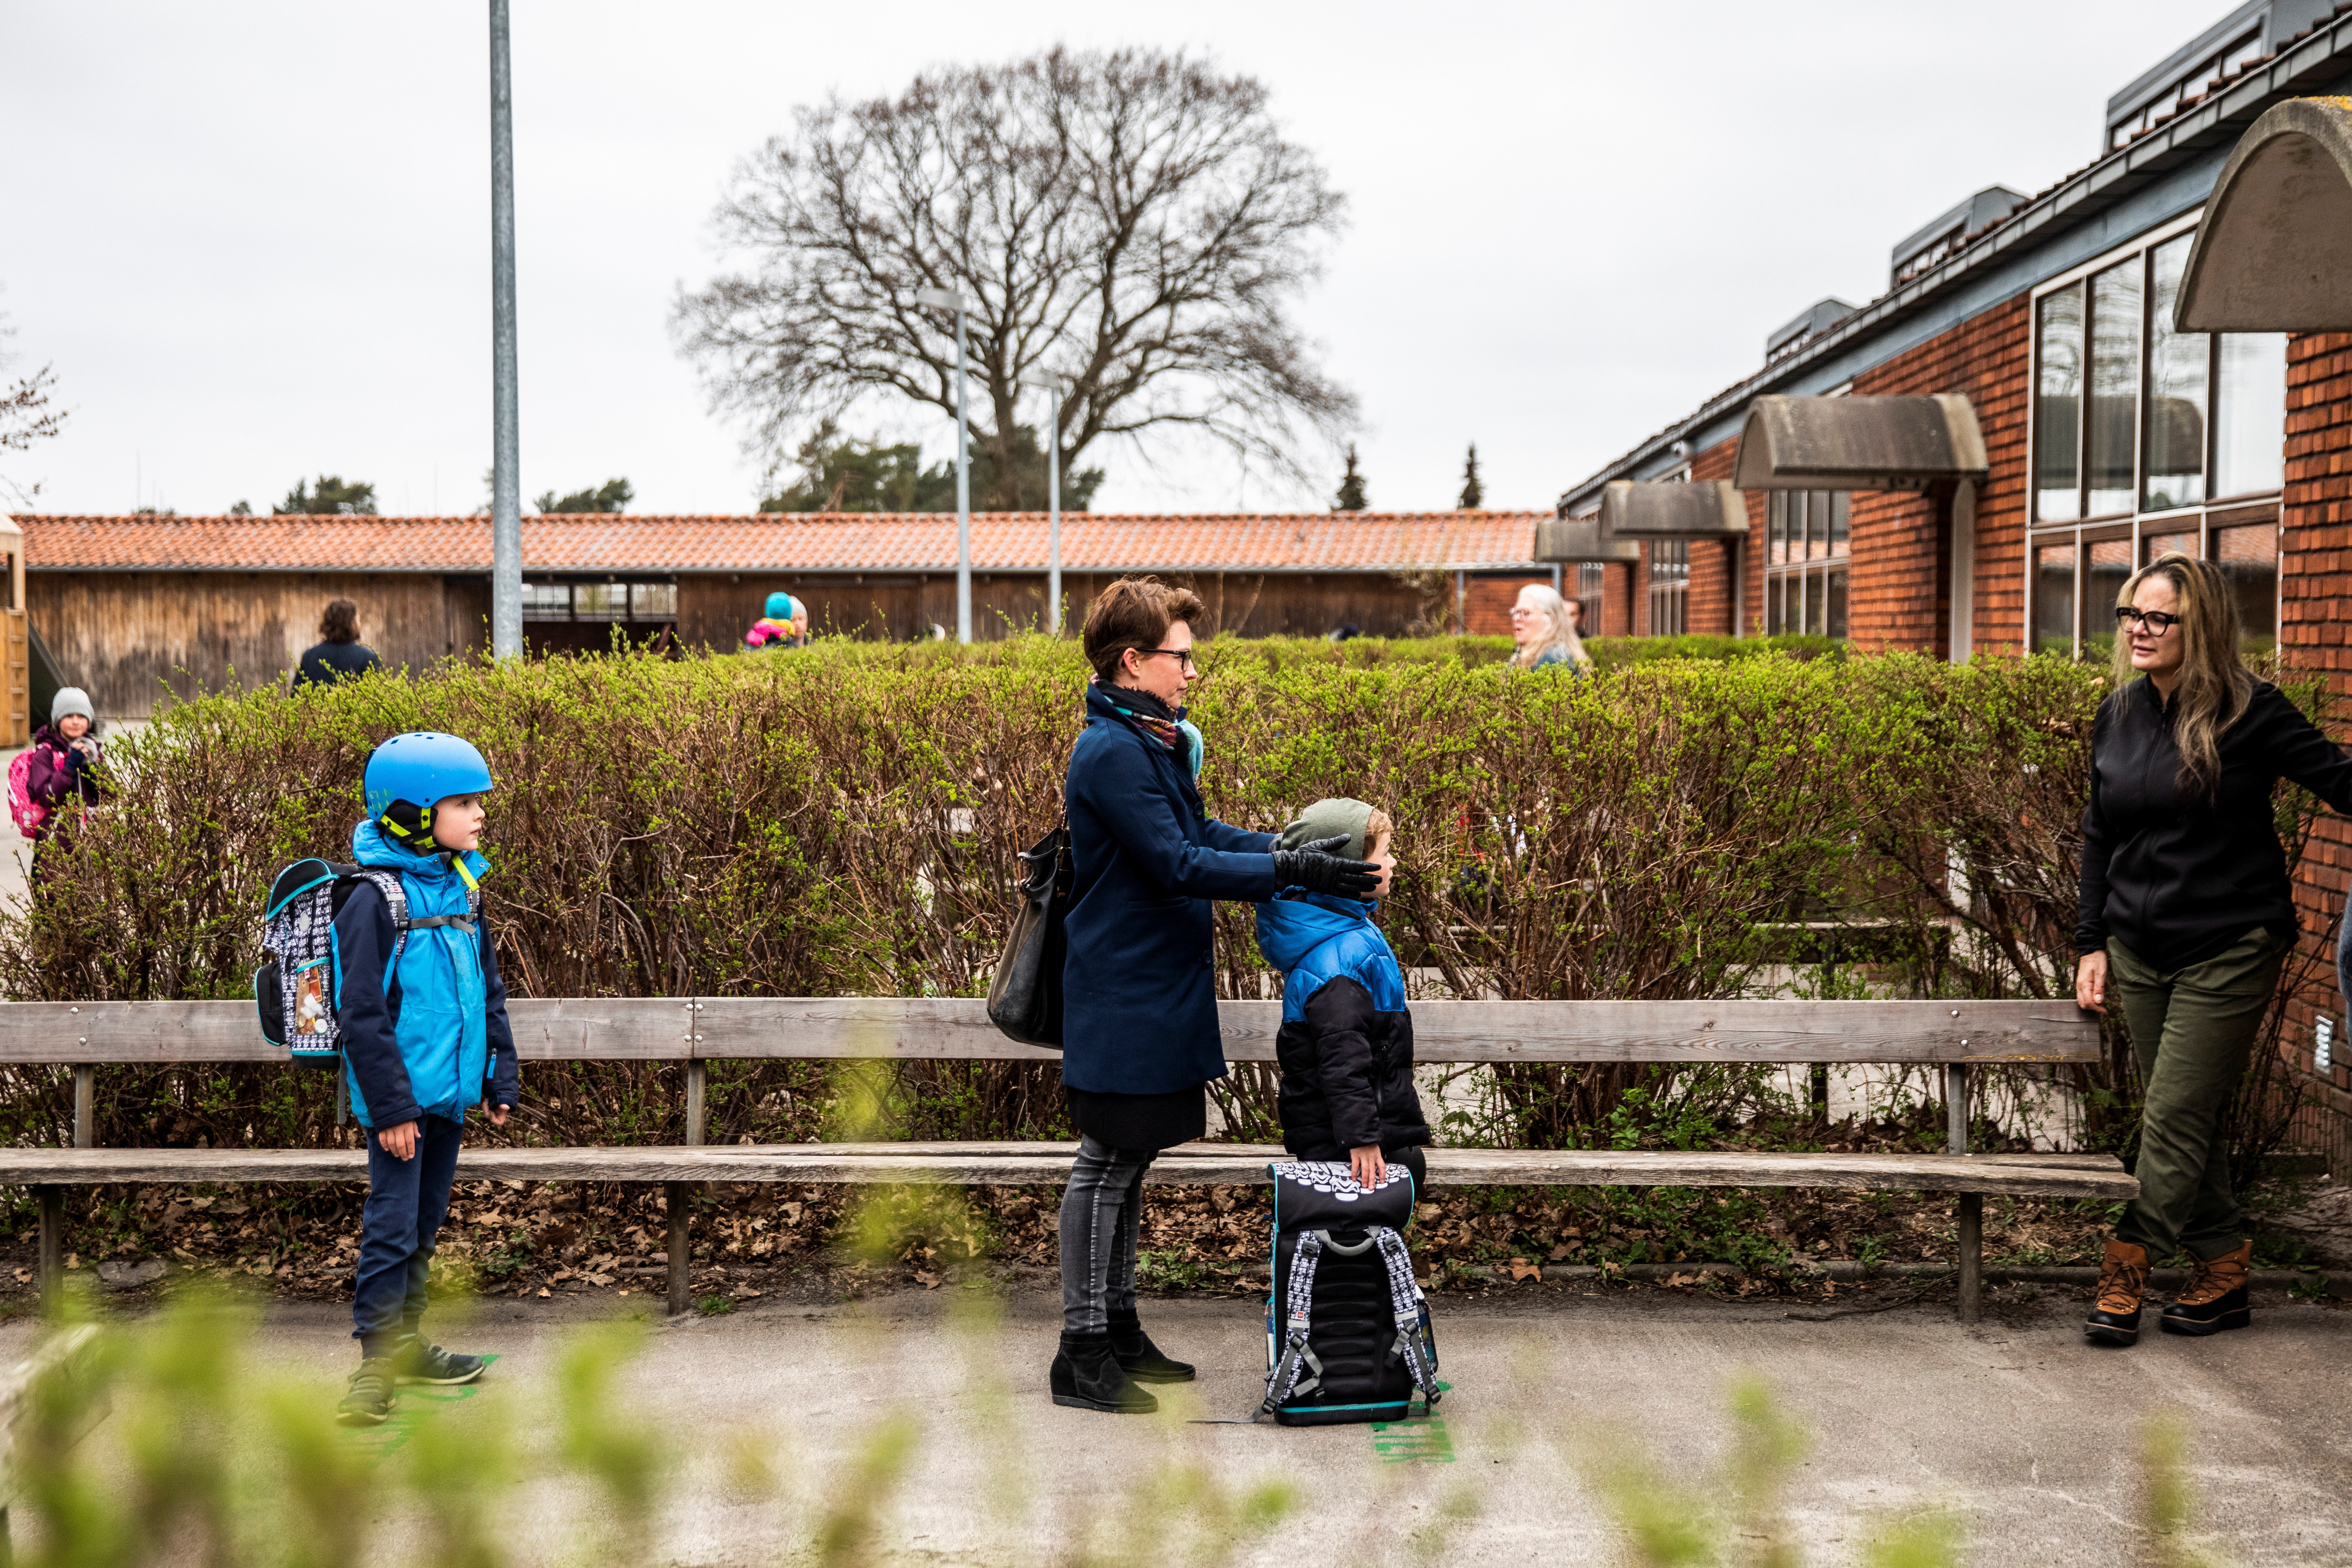 Parents with their children stand in a queue waiting to get inside Stengaard School following the coronavirus disease (COVID-19) outbreak north of Copenhagen, Denemark, April 15, 2020. Ritzau Scanpix/Bo Amstrup/via REUTERS ATTENTION EDITORS - THIS IMAGE WAS PROVIDED BY A THIRD PARTY. DENMARK OUT. NO COMMERCIAL OR EDITORIAL SALES IN DENMARK. - RC2Y4G9RKE0S